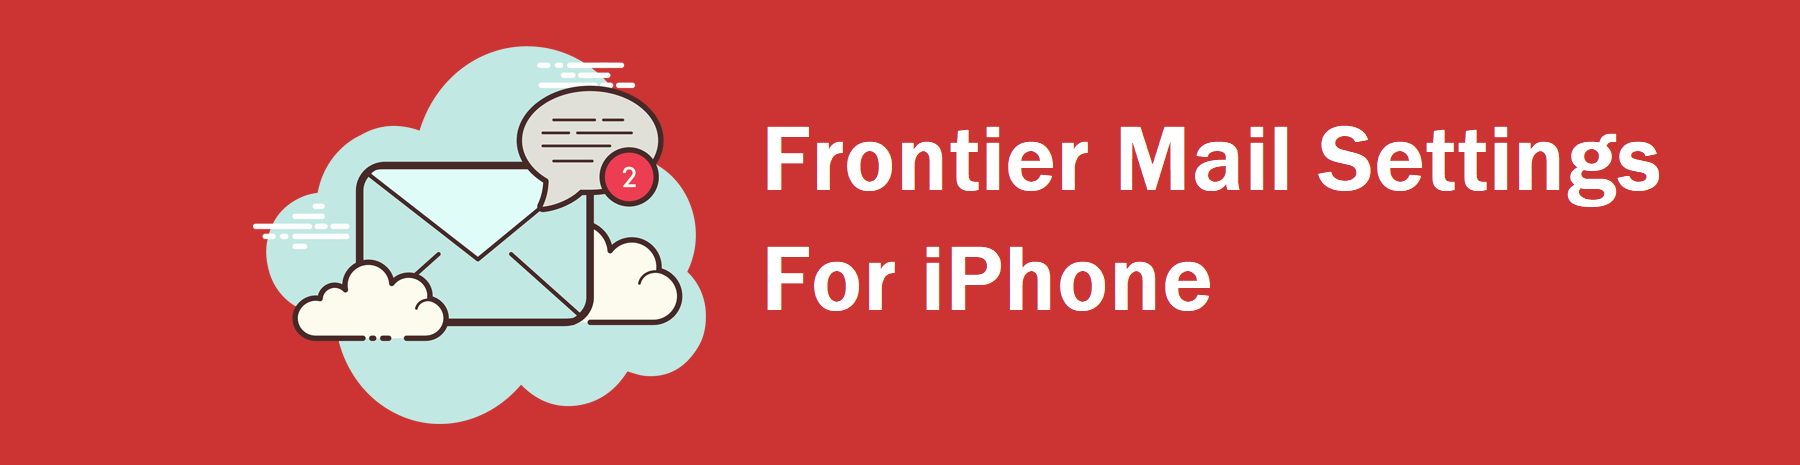 Frontier Mail Settings For iPhone